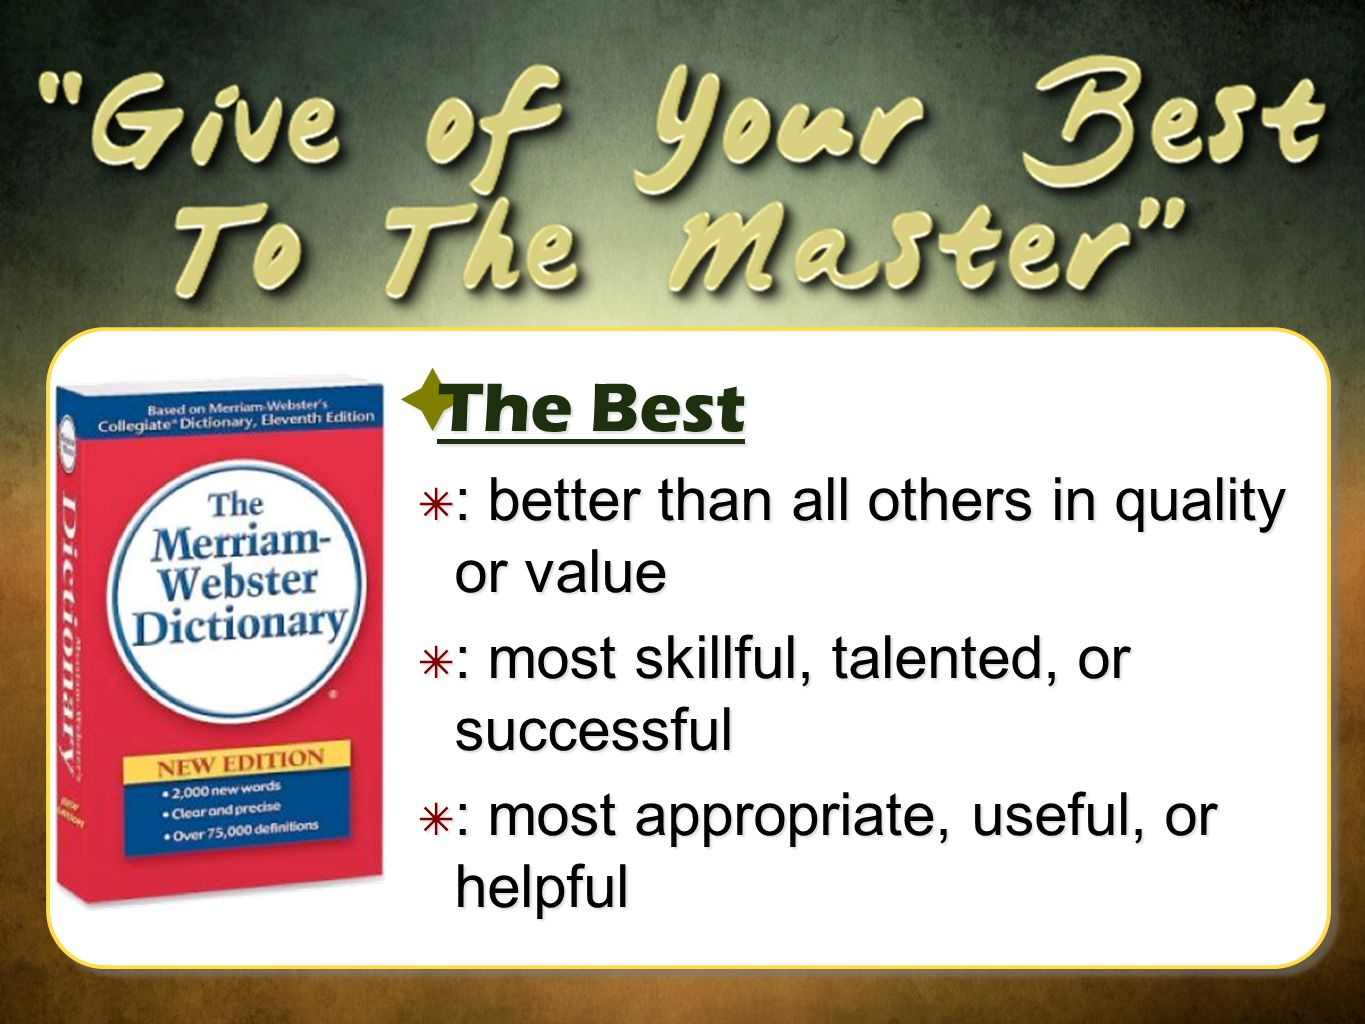  The Best ✴ : better than all others in quality or value ✴ : most skillful, talented, or successful ✴ : most appropriate, useful, or helpful